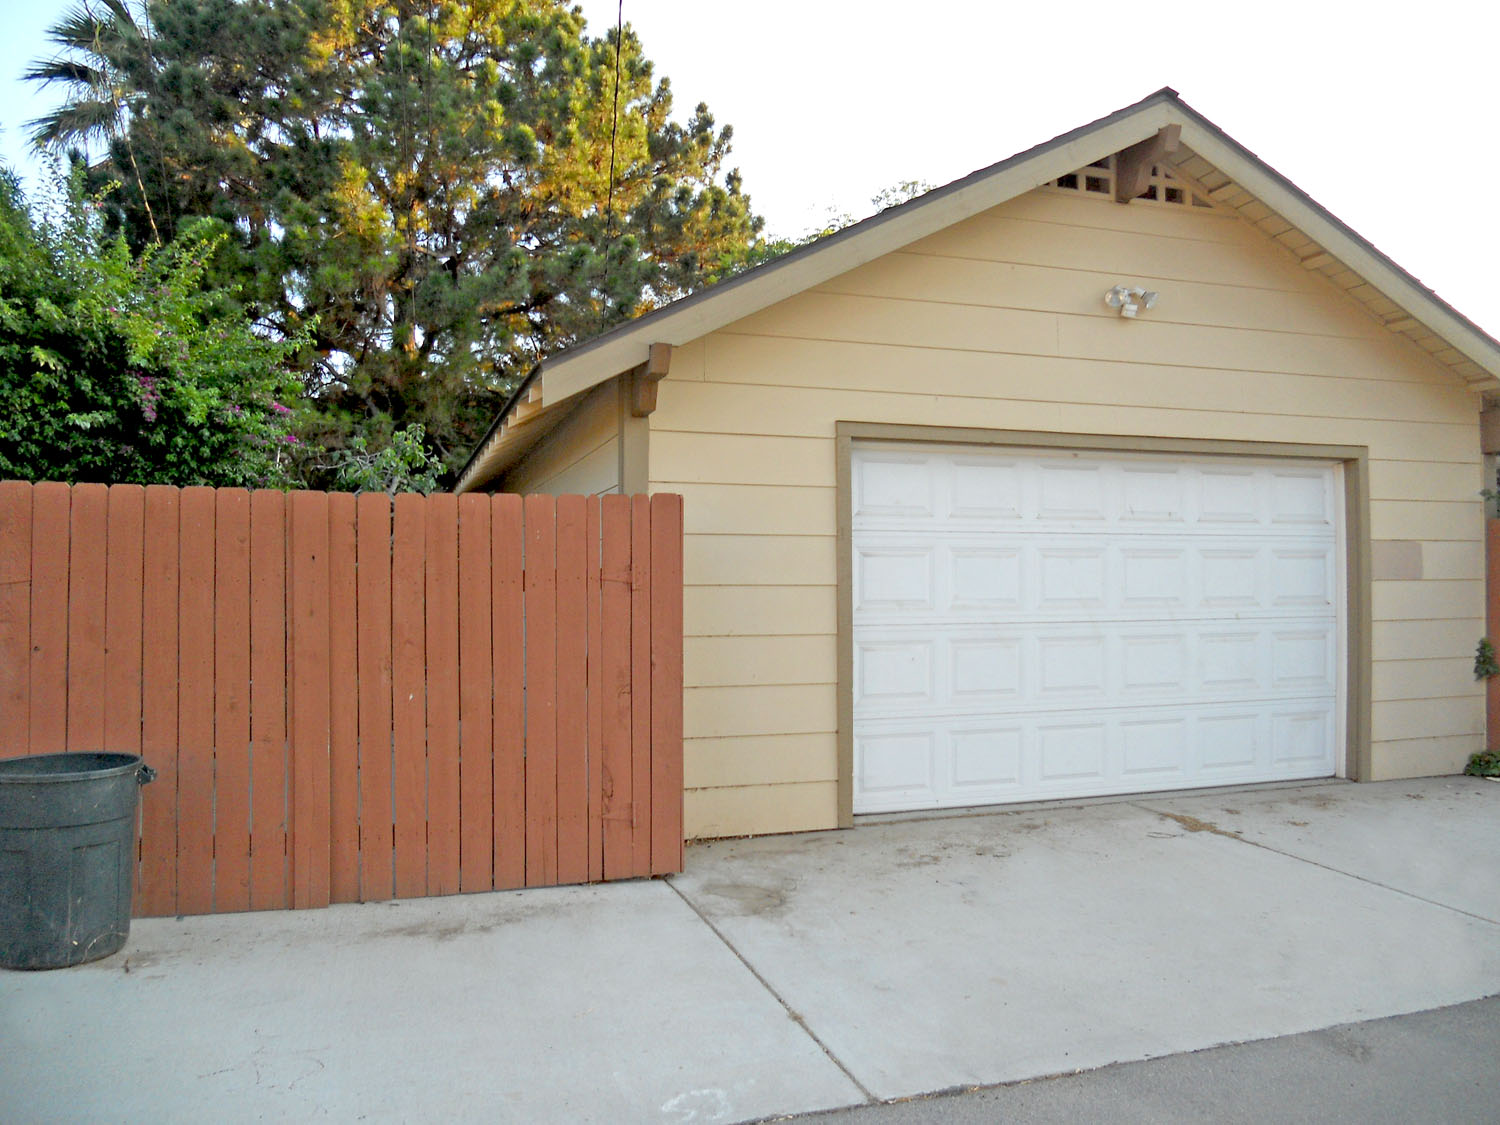 View of 2-car garage from paved alley.